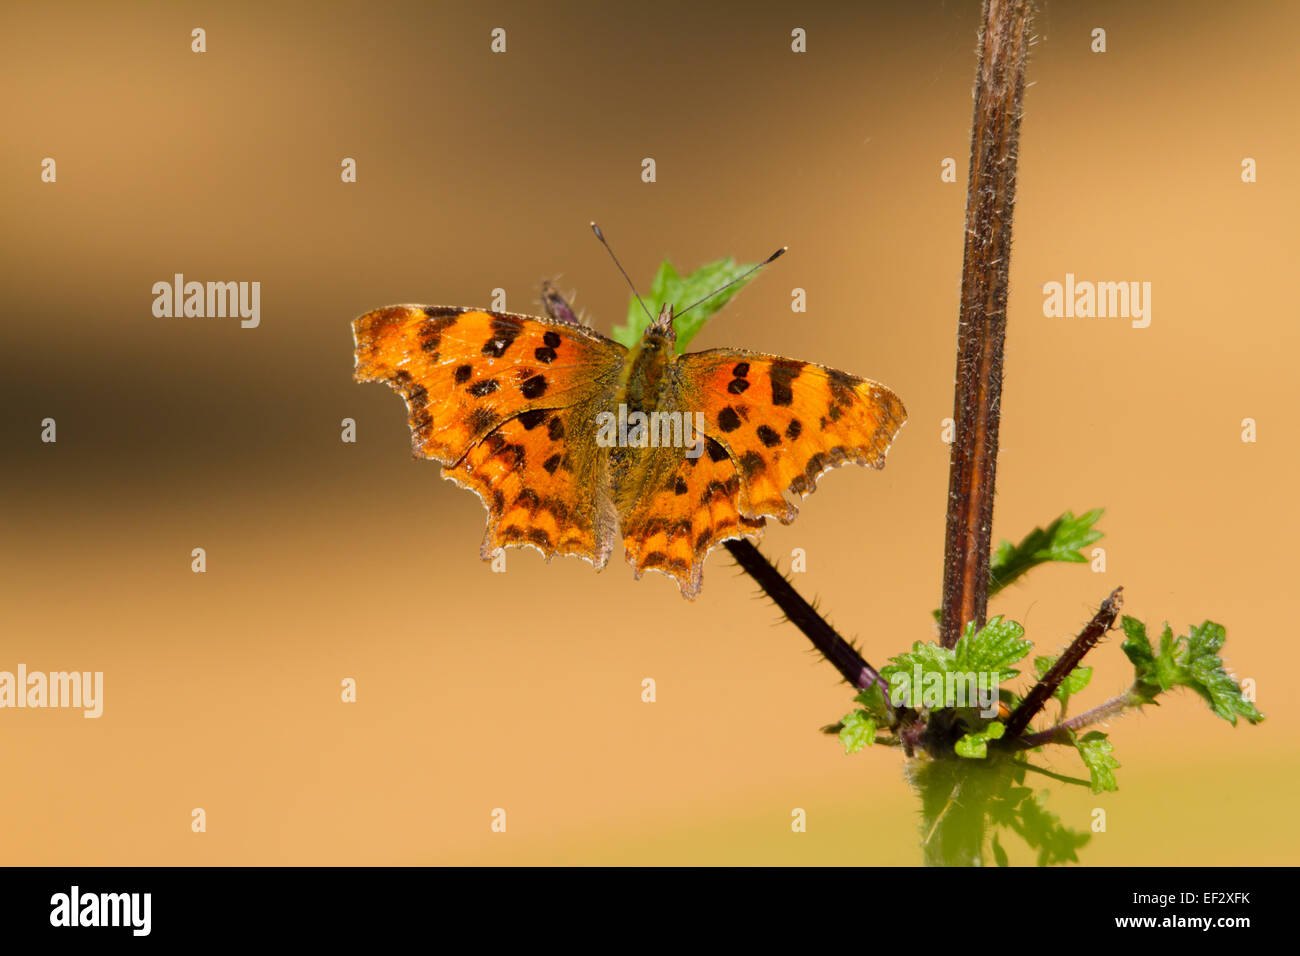 The Comma (Polygonia c-album) is a species of butterfly belonging to the family Nymphalidae. Sometimes called anglewing. - Stock Image